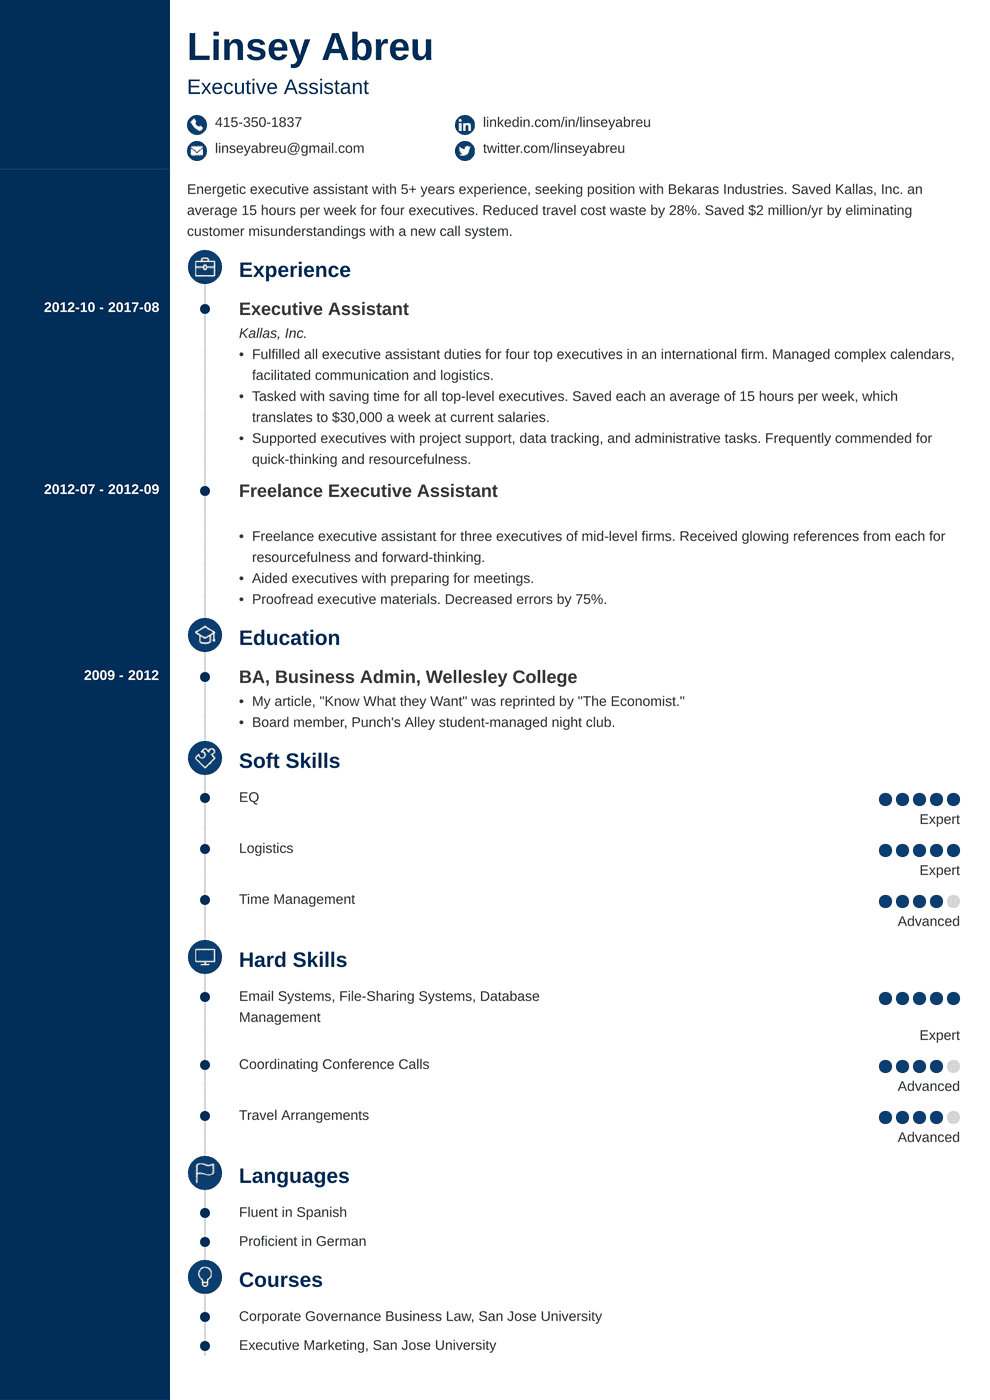 Executive Assistant Resume: Sample & Complete Guide [20+ Examples]